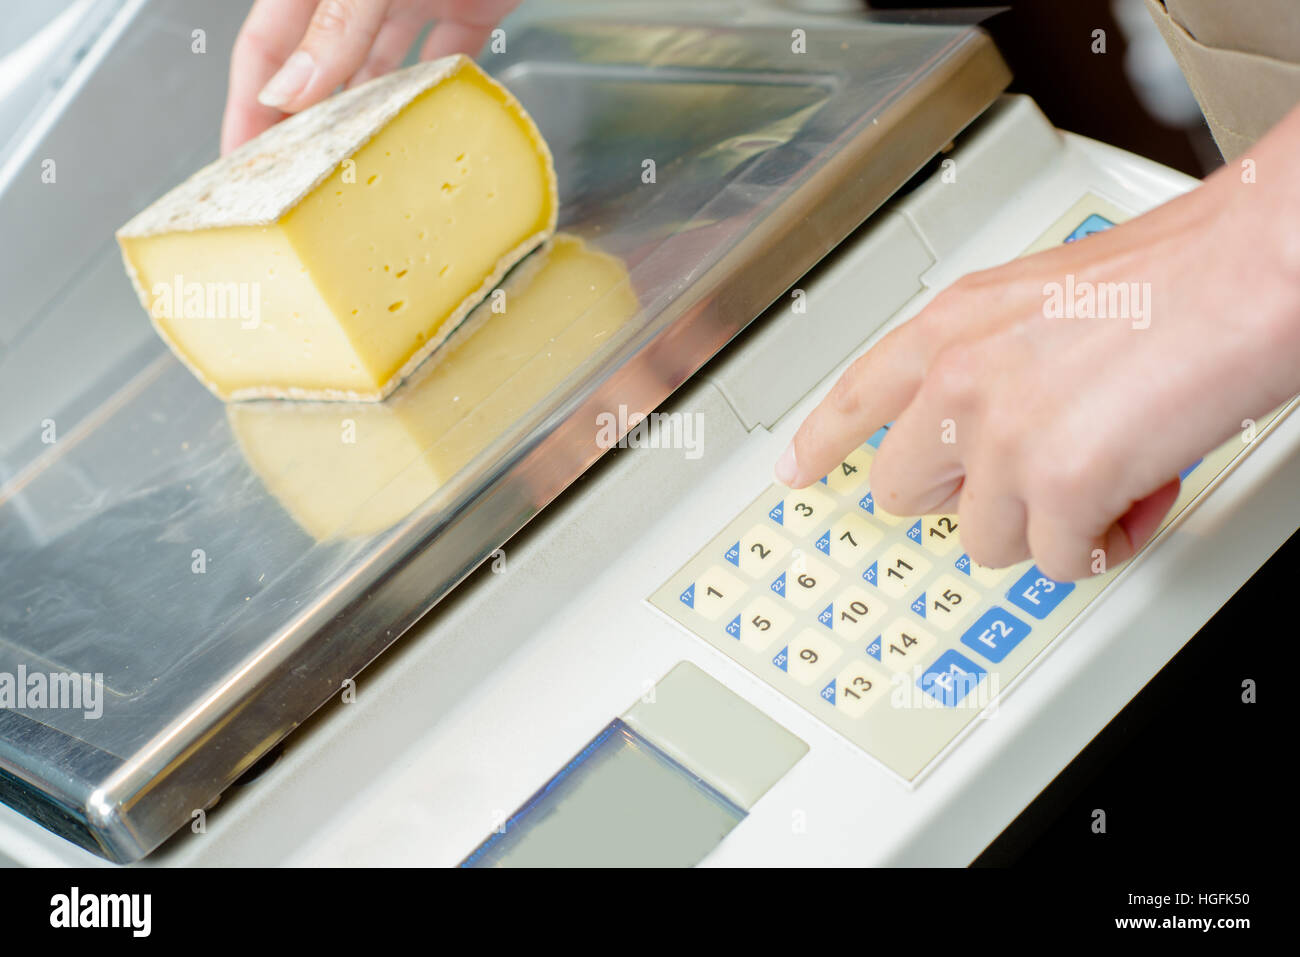 Weighing cheese on electronic scales - Stock Image